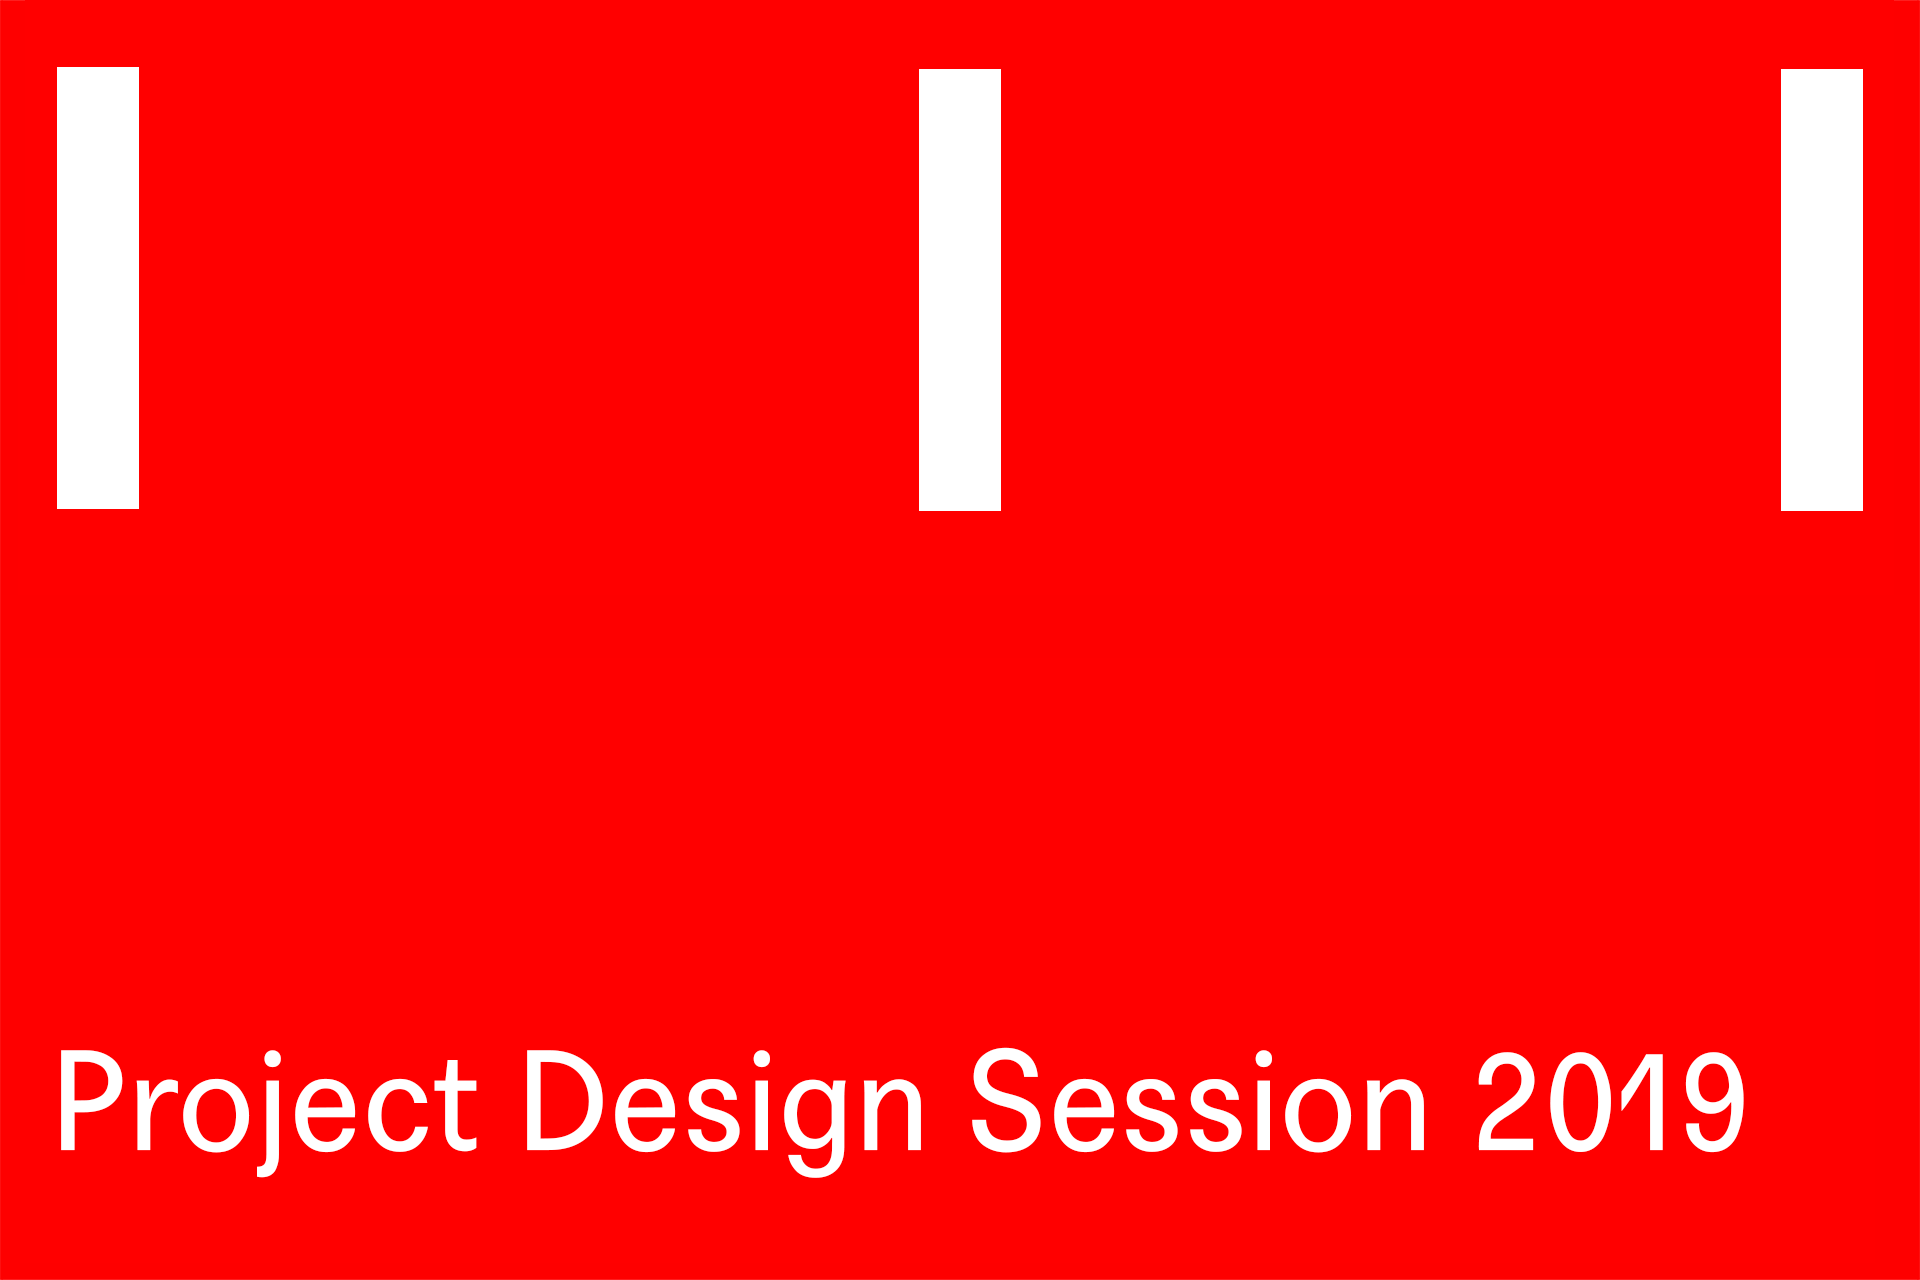 Project Design Session — 2019 » School of advanced studies